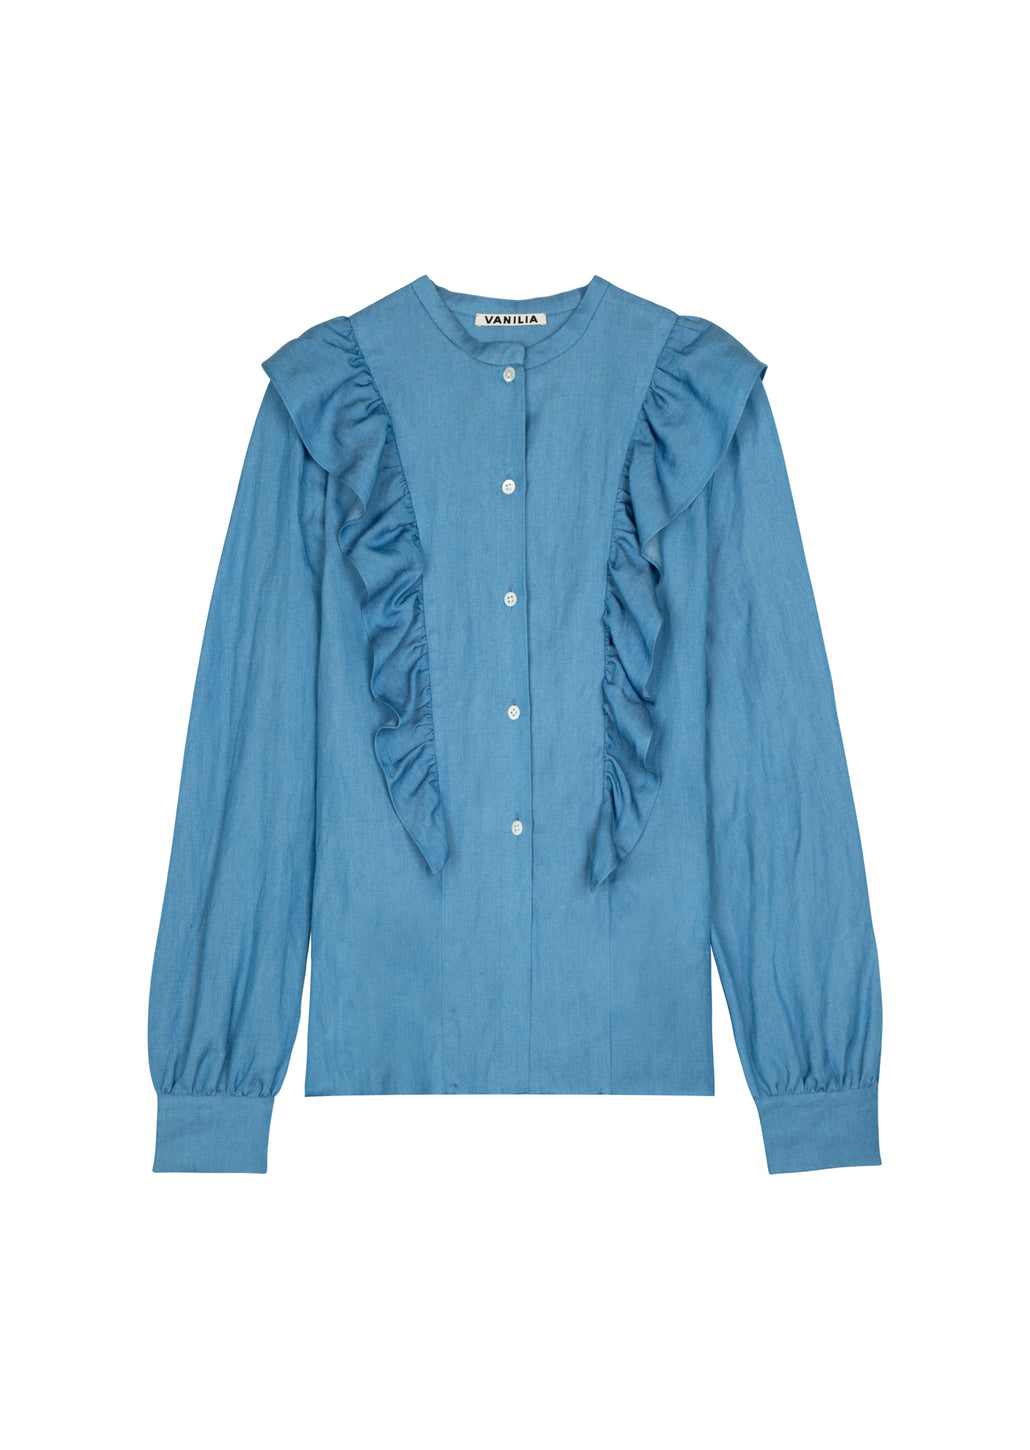 Ruffle blouse in jeansstof